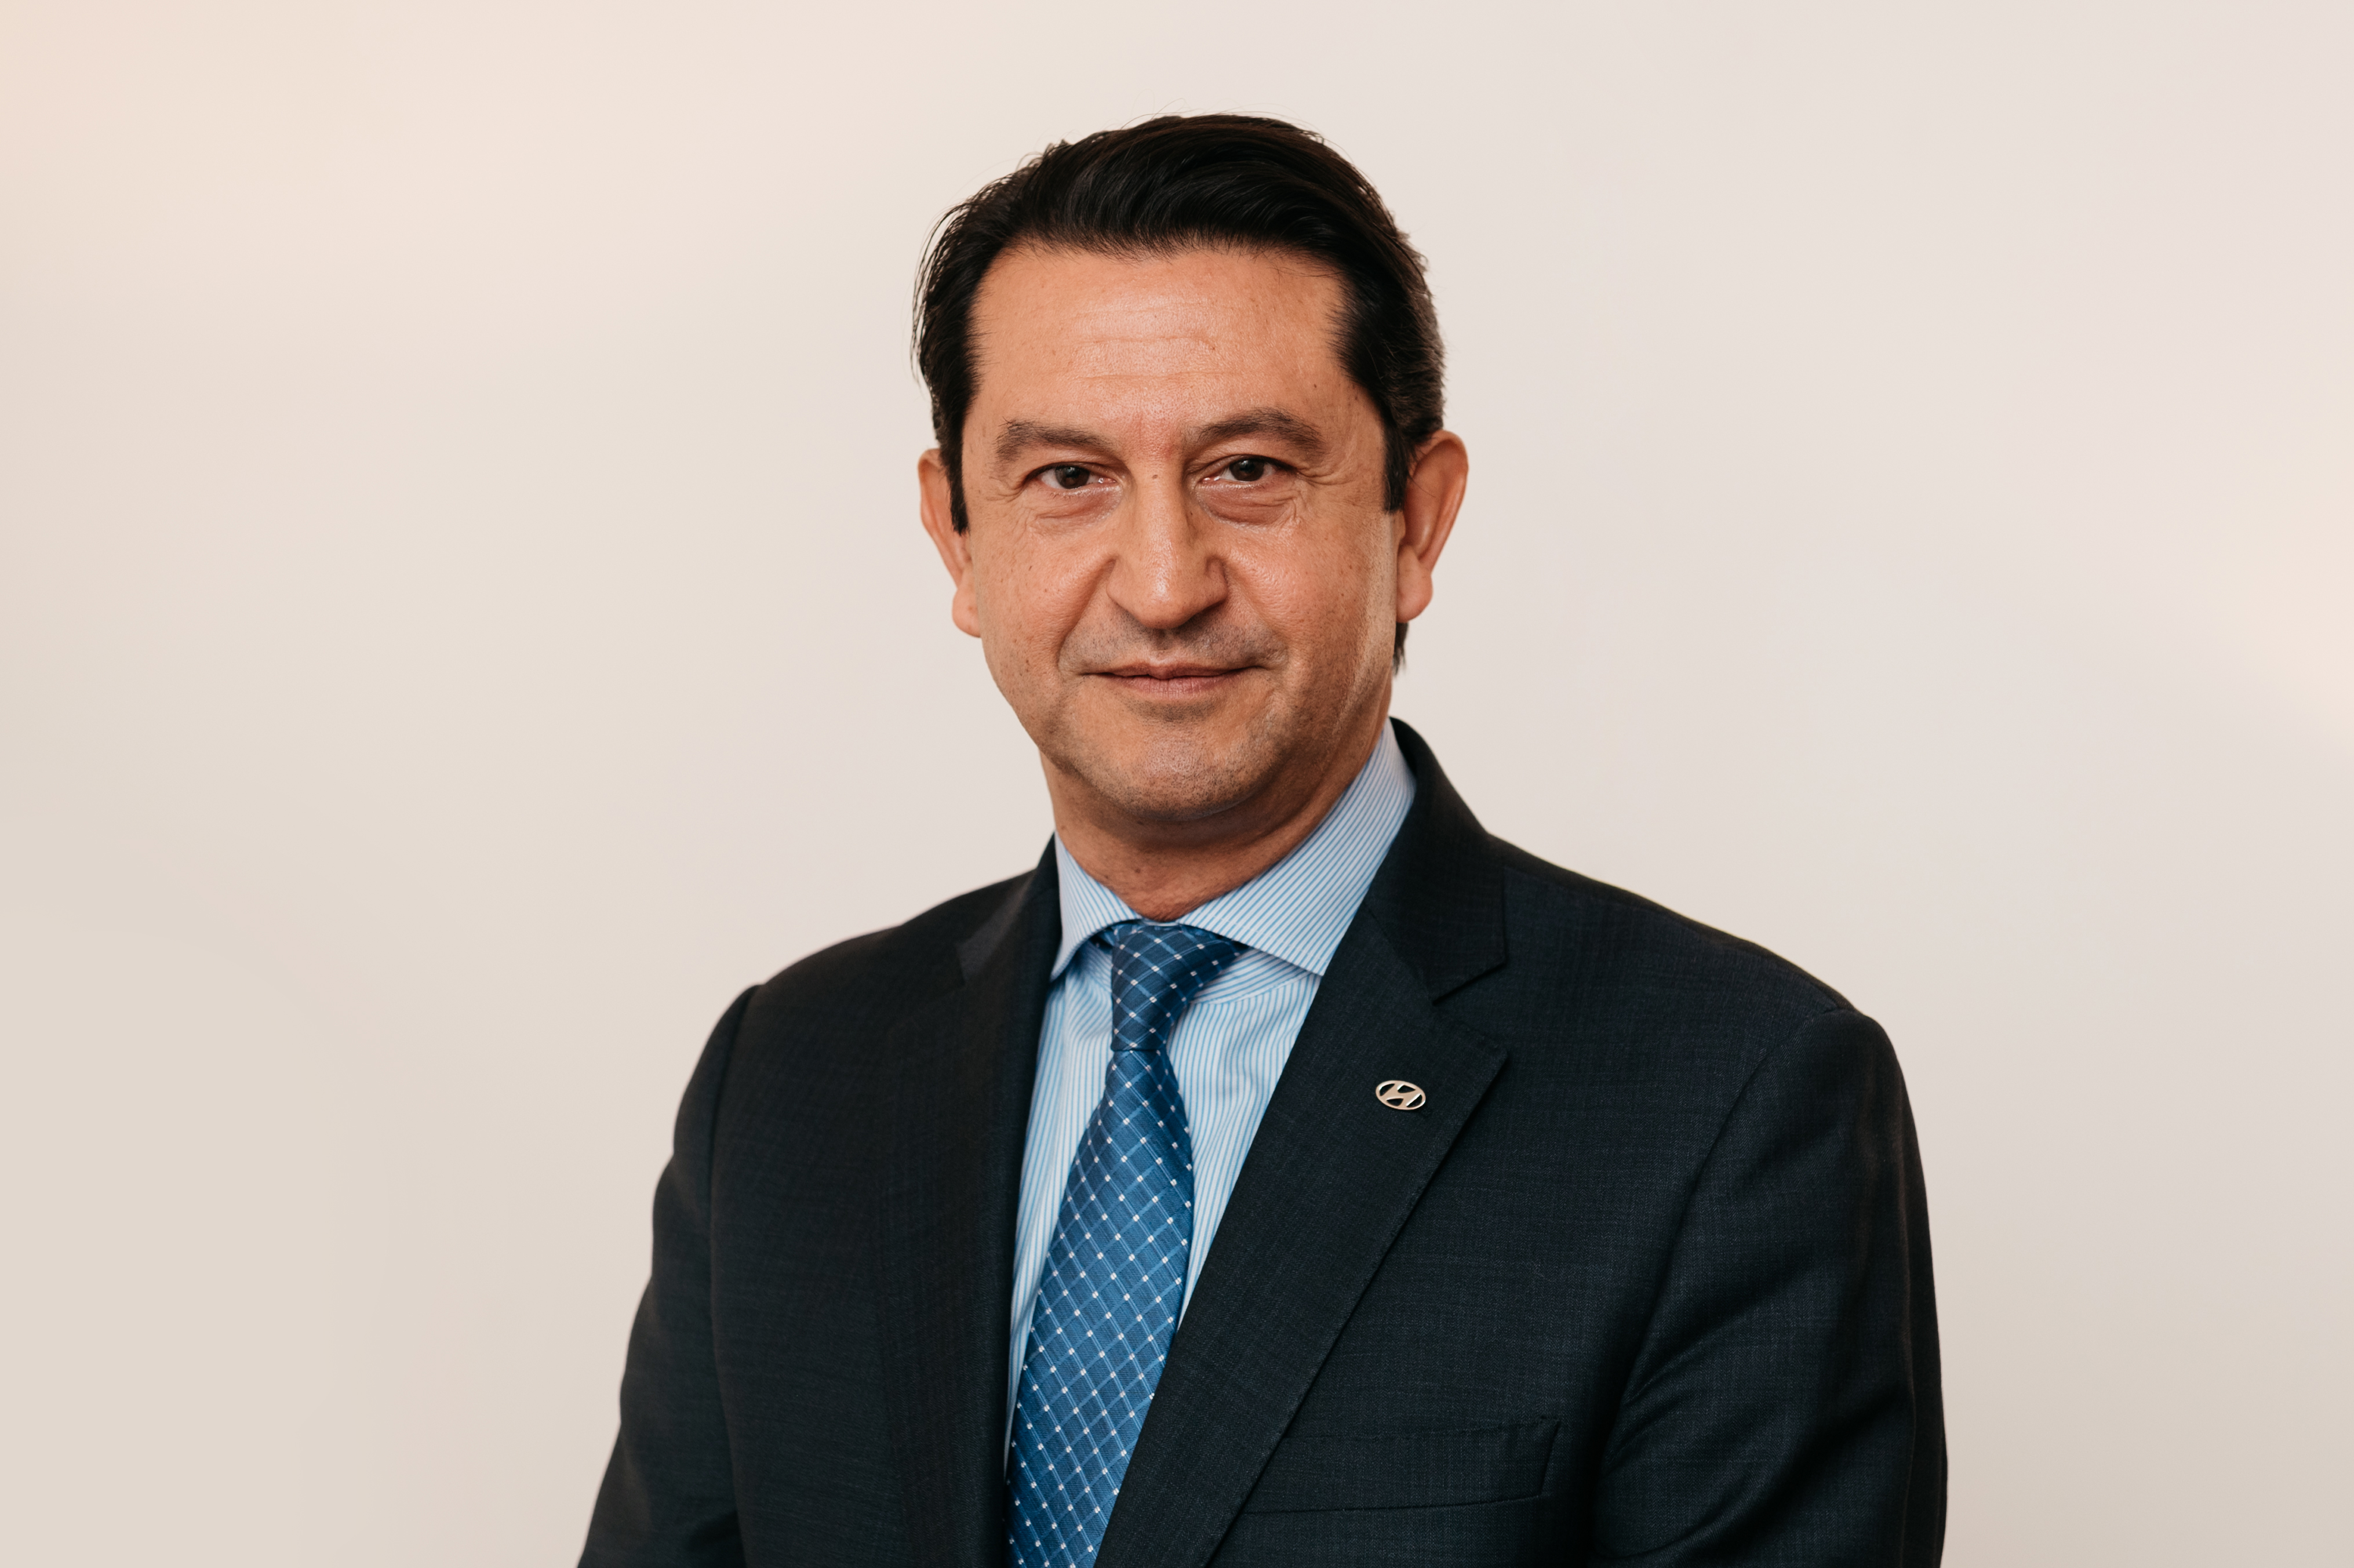 Hyundai Motor Appoints José Muñoz as COO